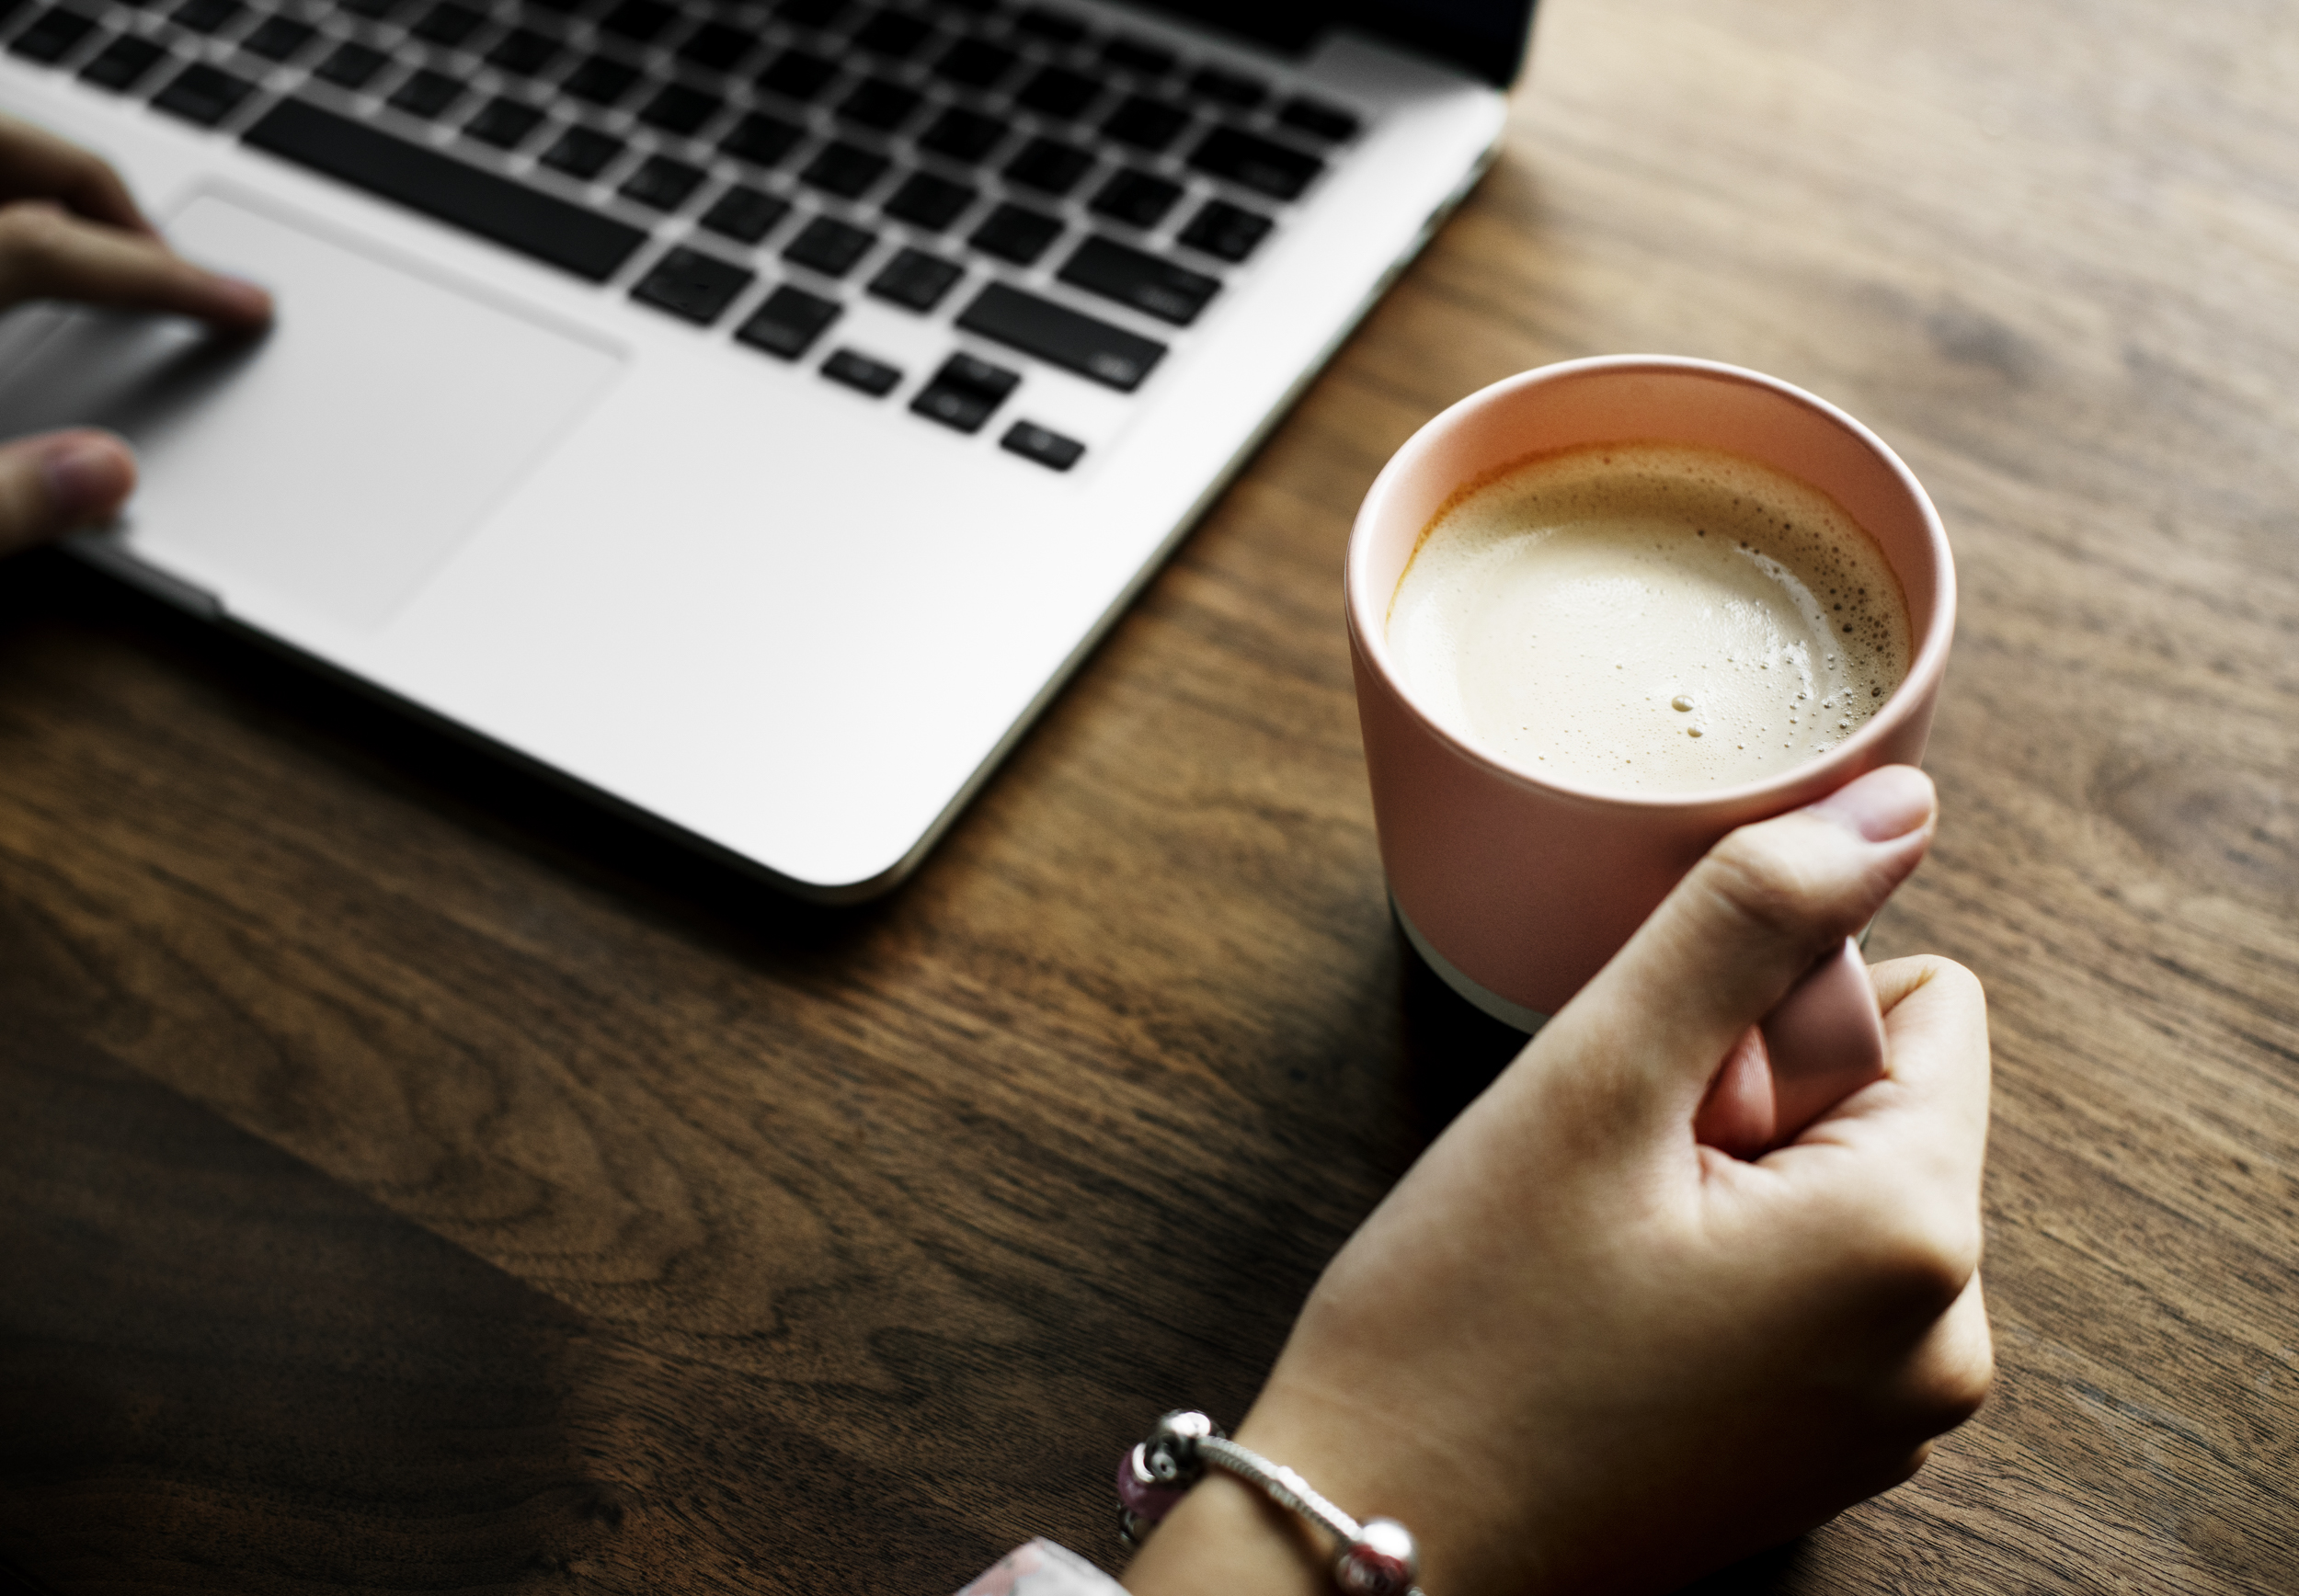 Your business needs a blog. Here's why.